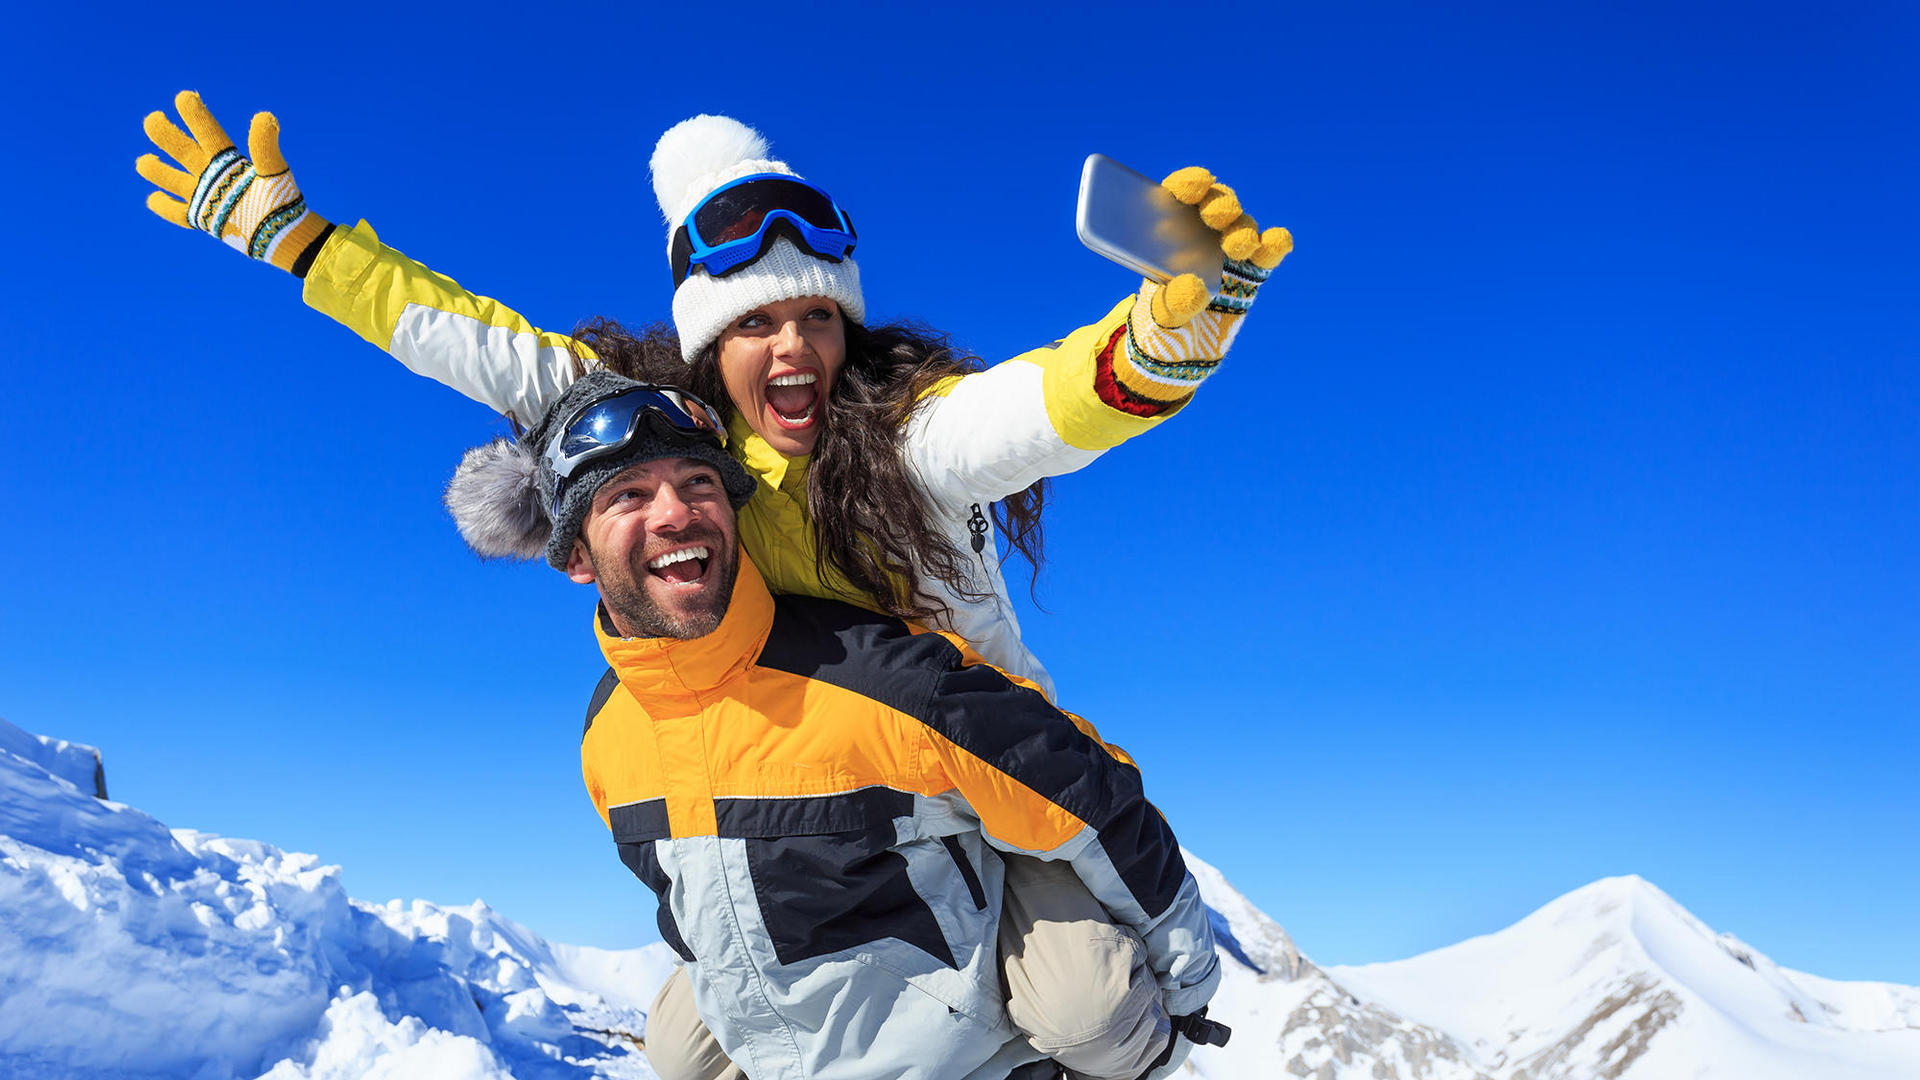 Man and woman taking selfie on top of snowy mountain